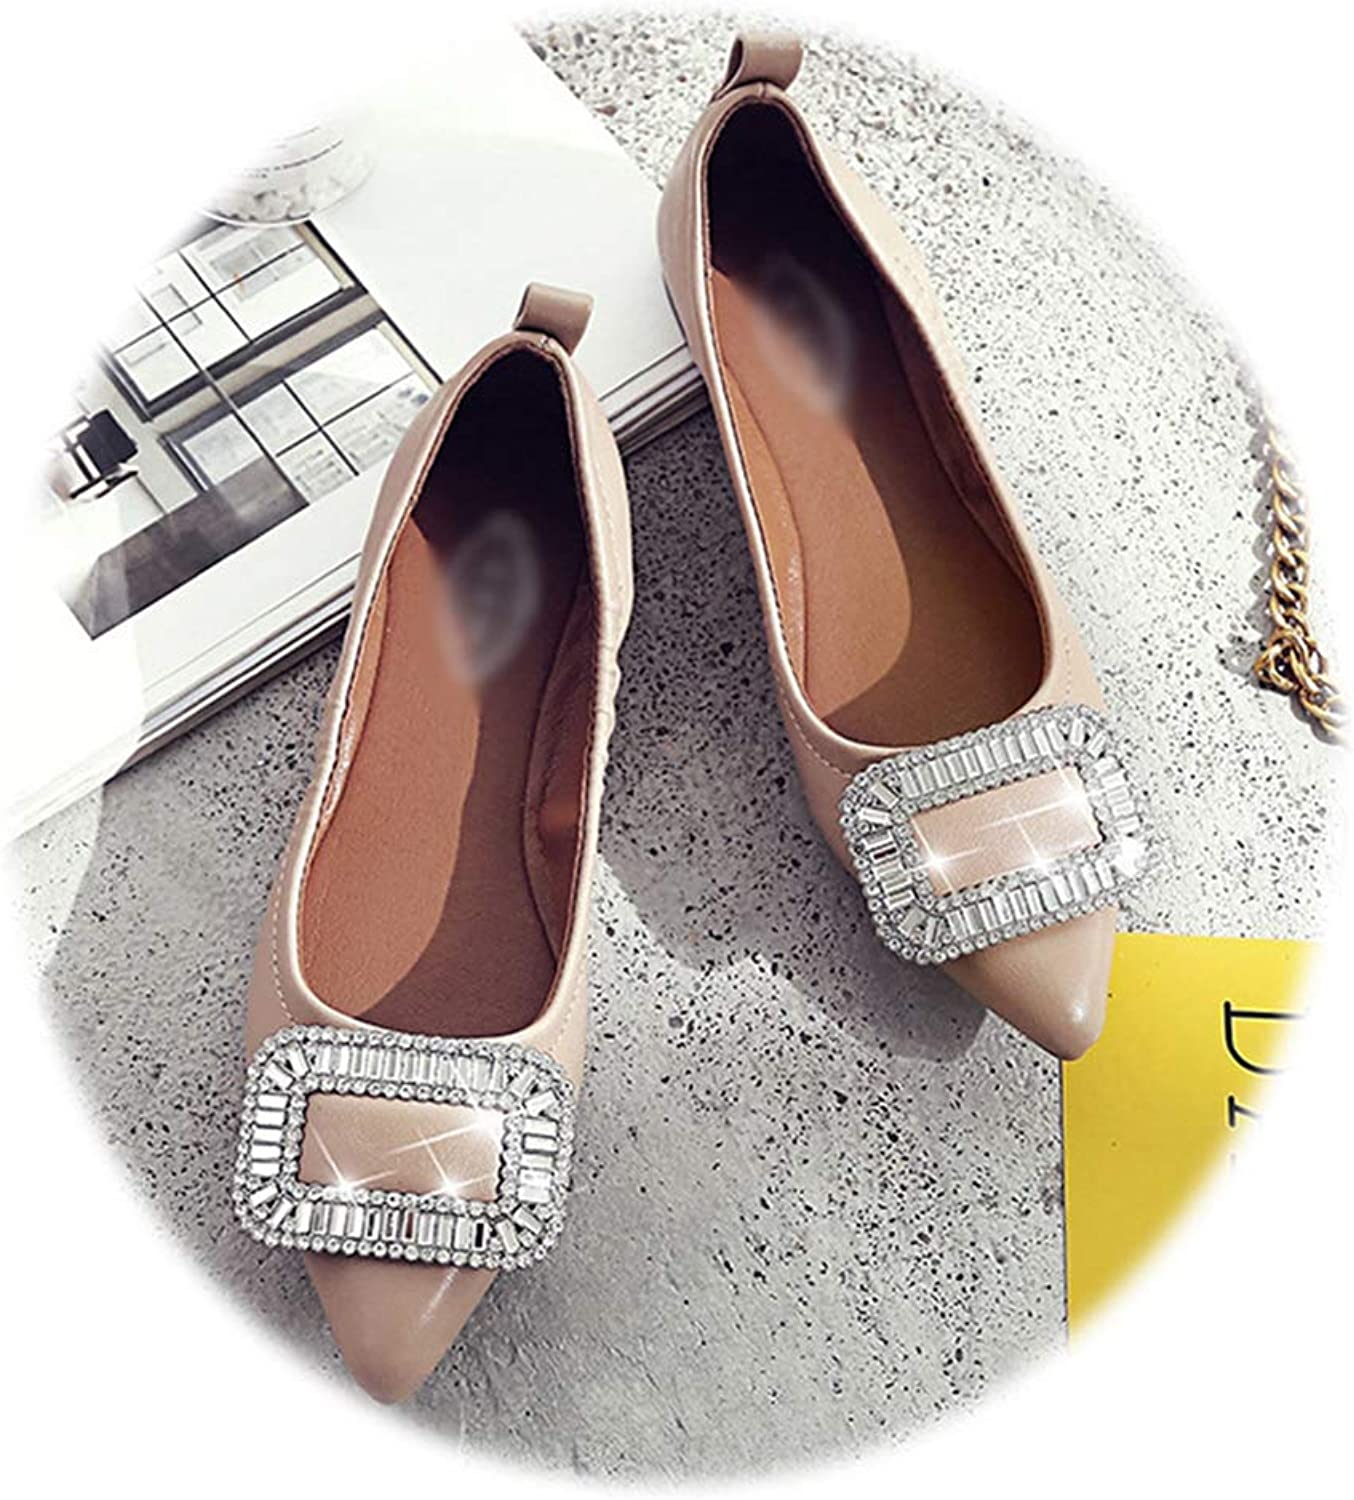 Women's Flats,Stylish Rhinestone Classic Casual Pointed-Toe Dress shoes